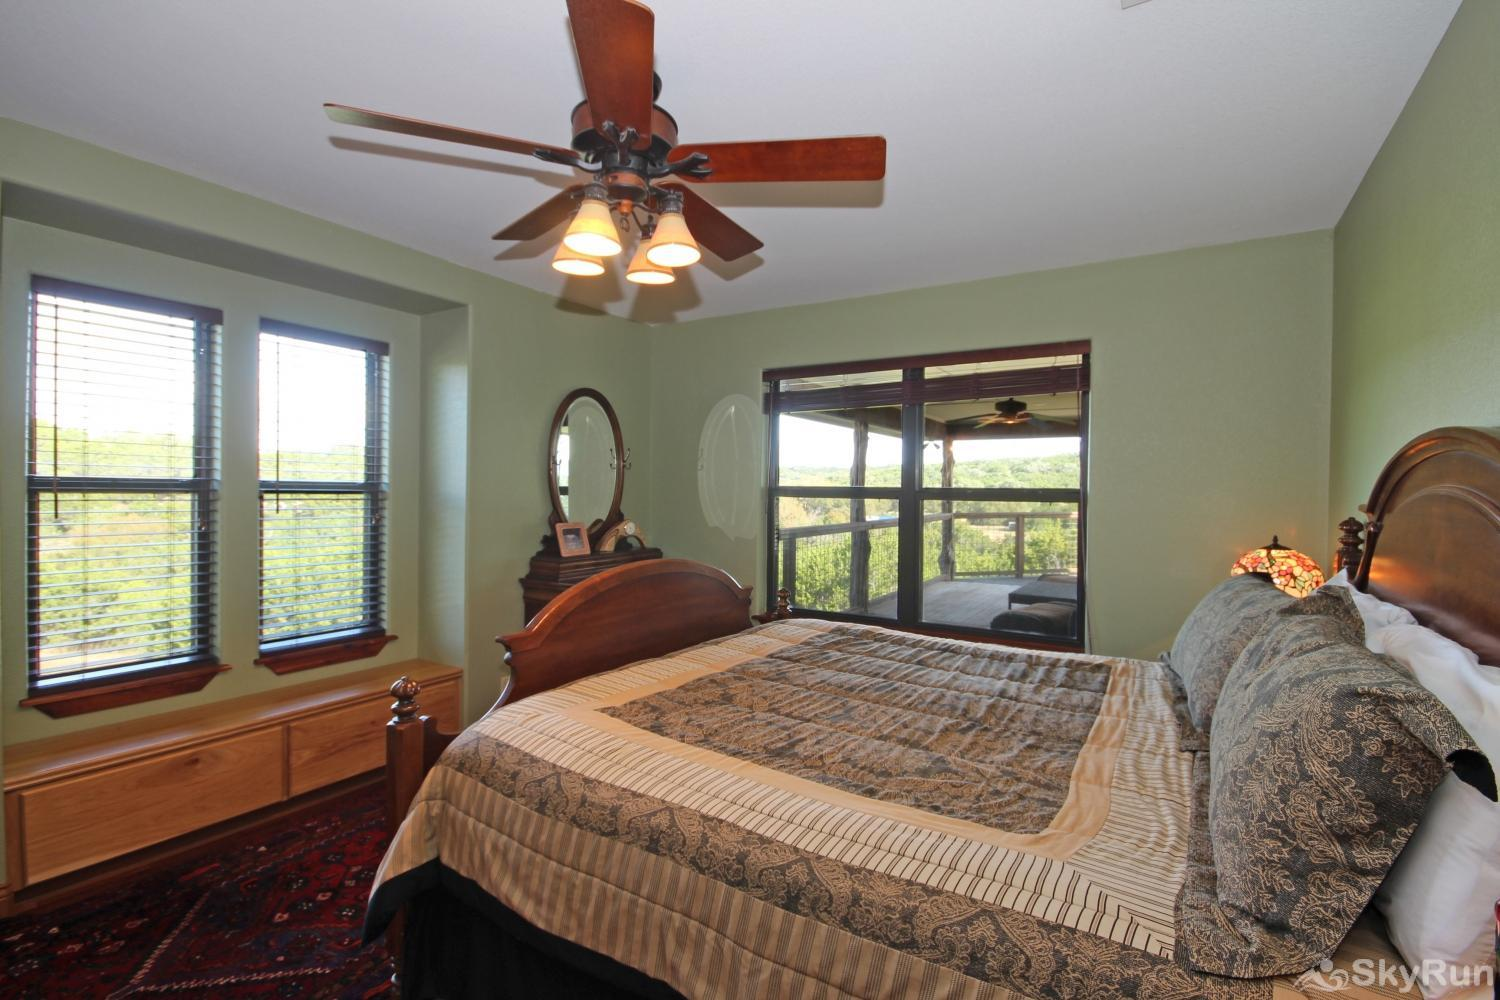 STAR HOUSE Second bedroom with king bed and attached bath